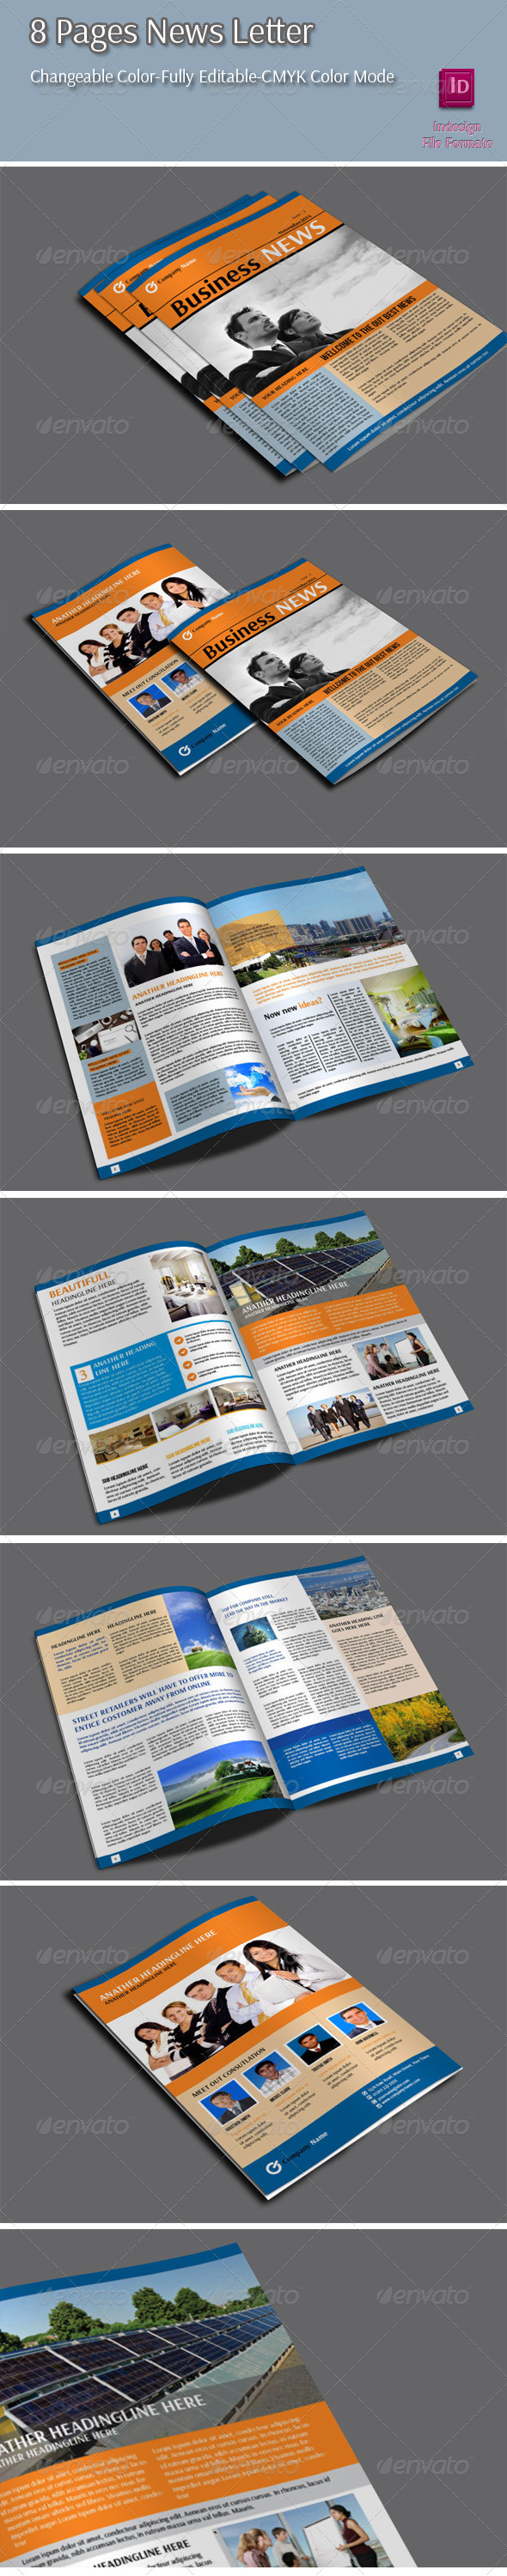 GraphicRiver 8 Pages Newletter 6450642